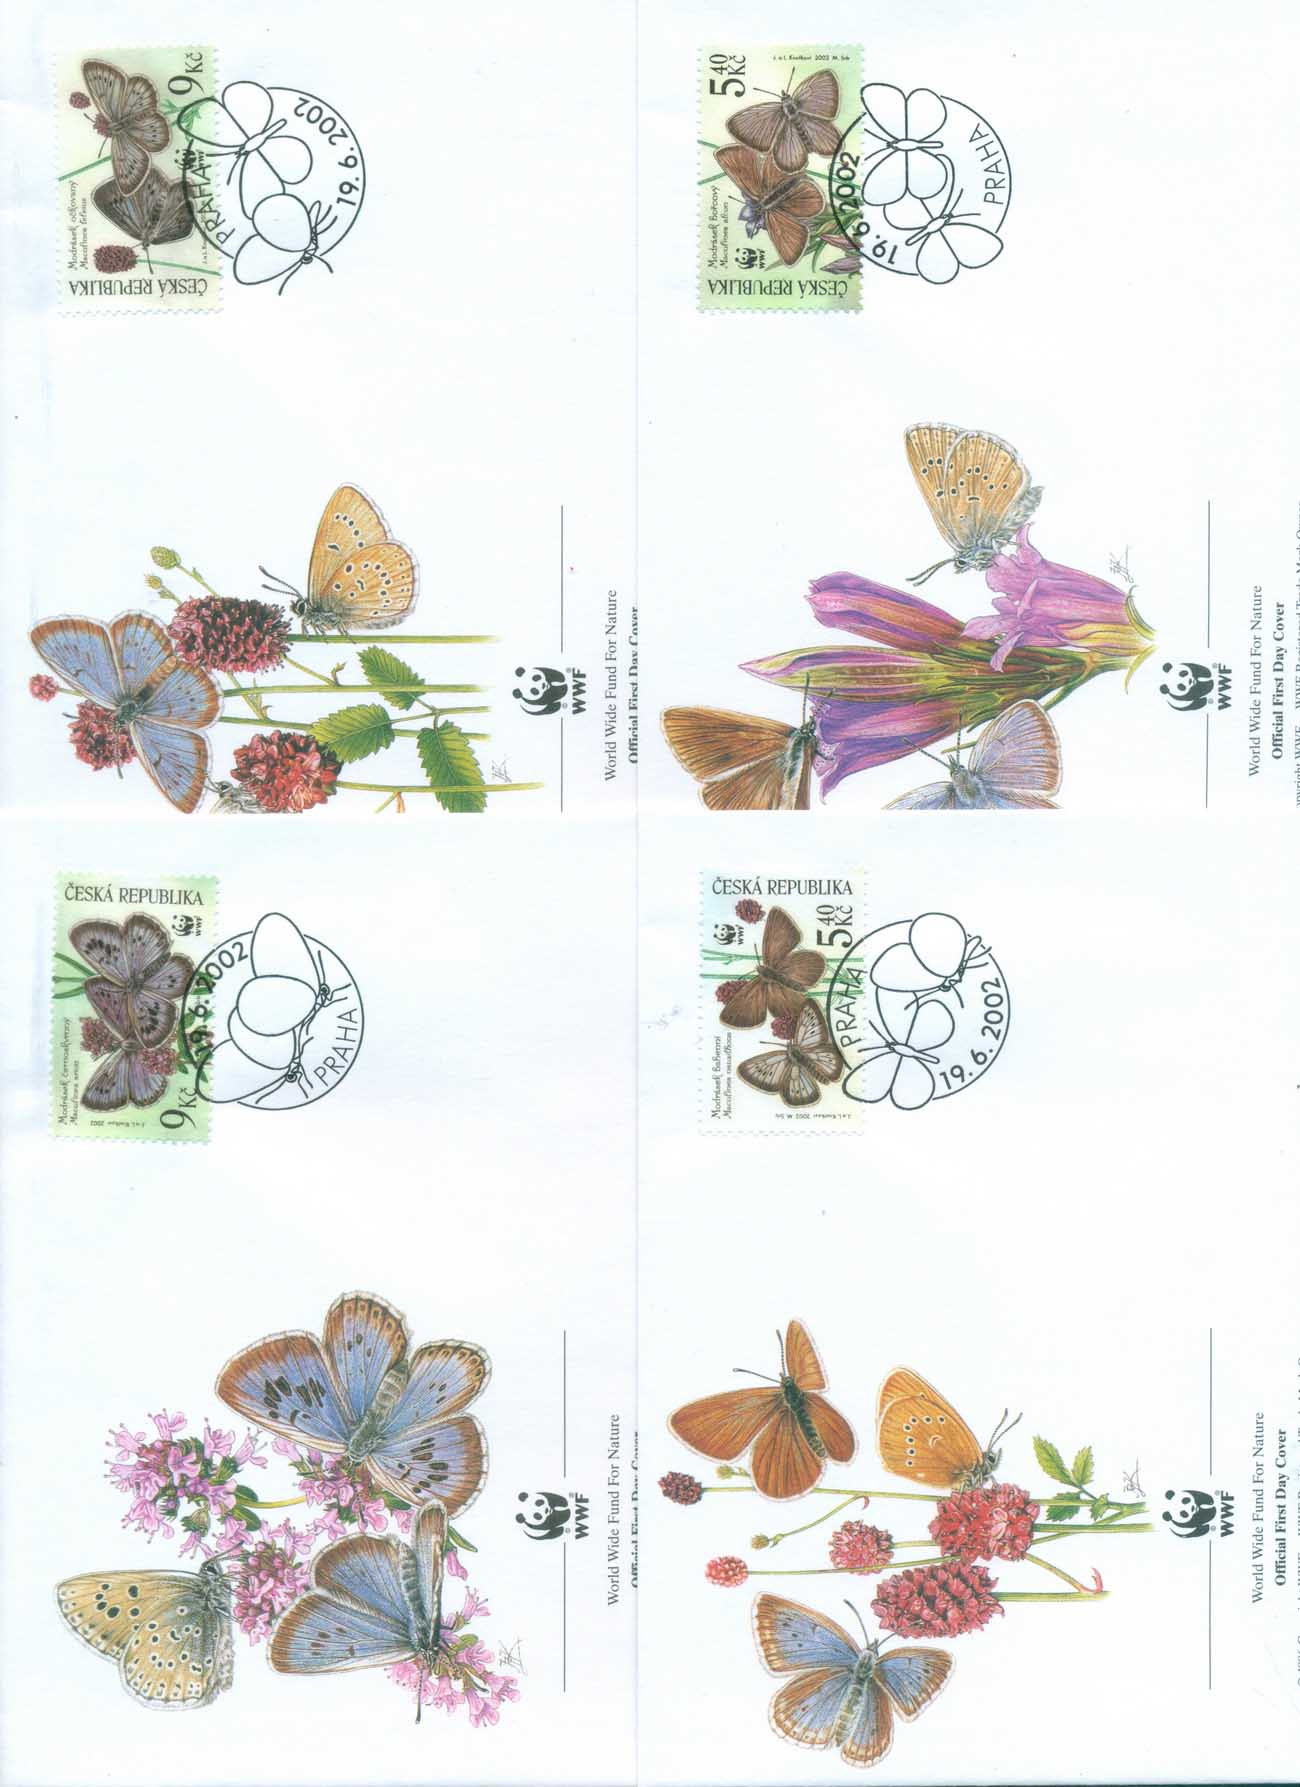 Czech Republic 2002 WWF Large Blue Butterflies4xFDC lot77077